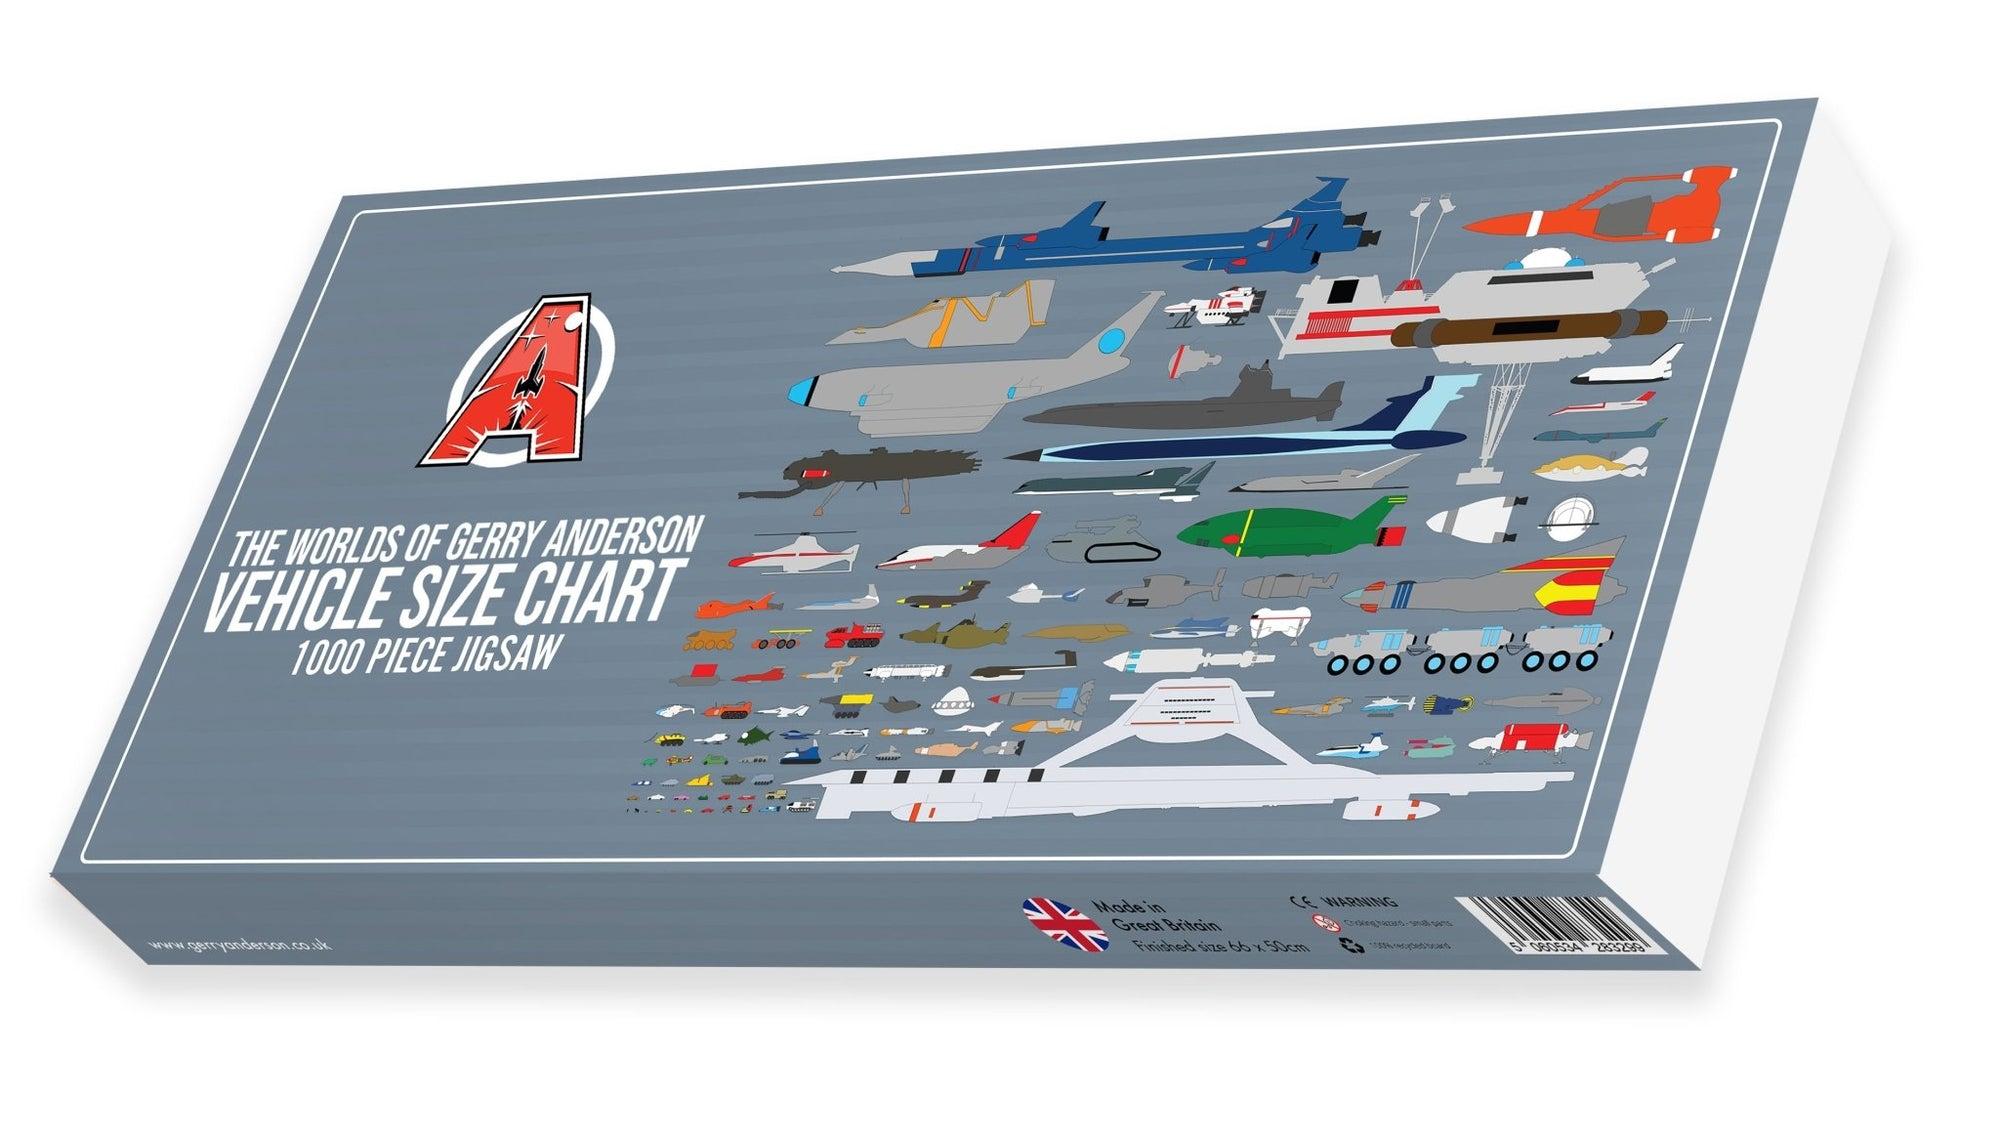 Gerry Anderson Vehicle Size Chart Jigsaw Puzzle - The Gerry Anderson Store